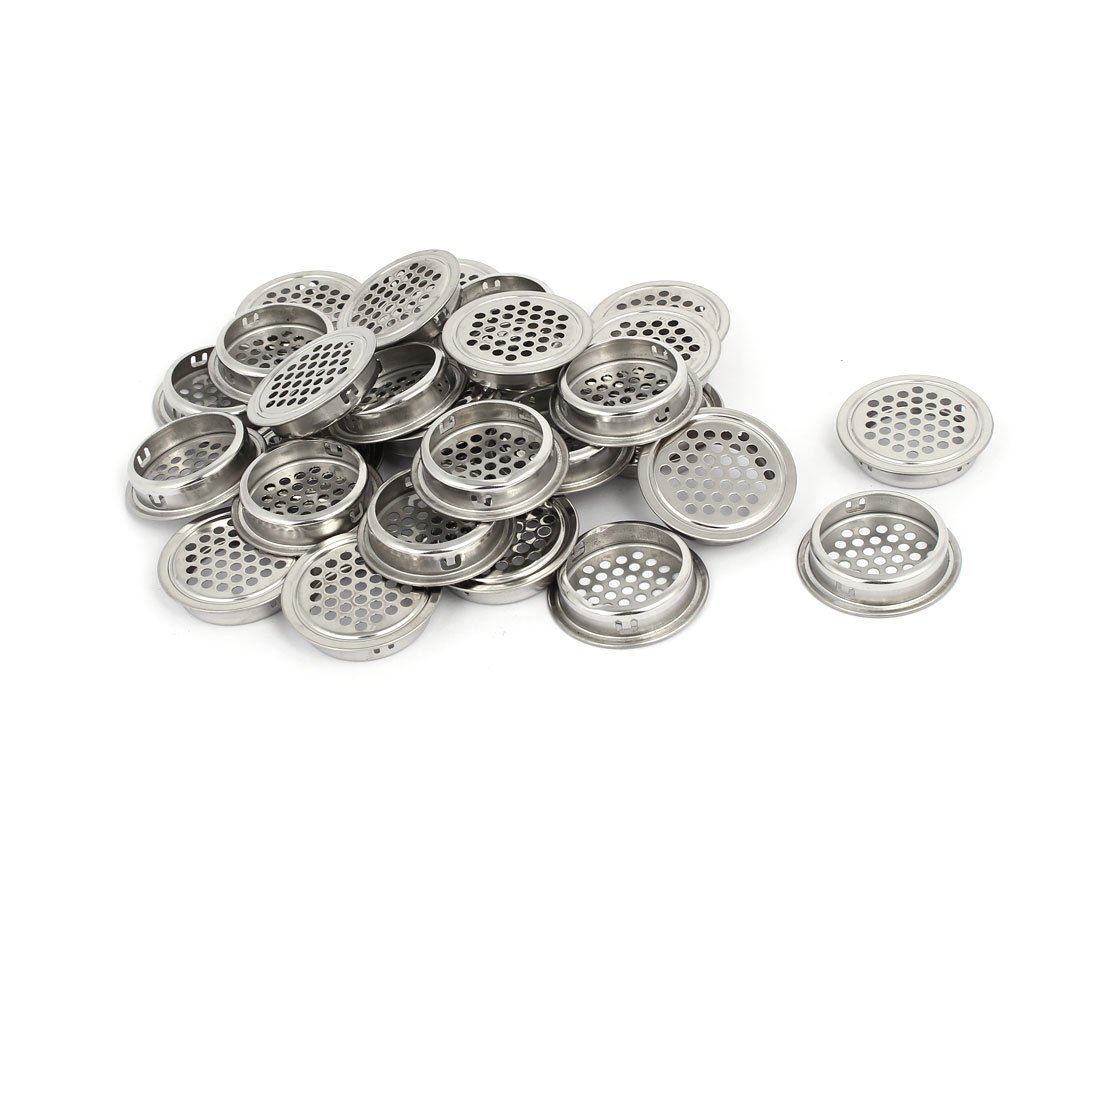 uxcell 35mm Bottom Dia Stainless Steel Round Shaped Mesh Hole Air Vent Louver 30pcs